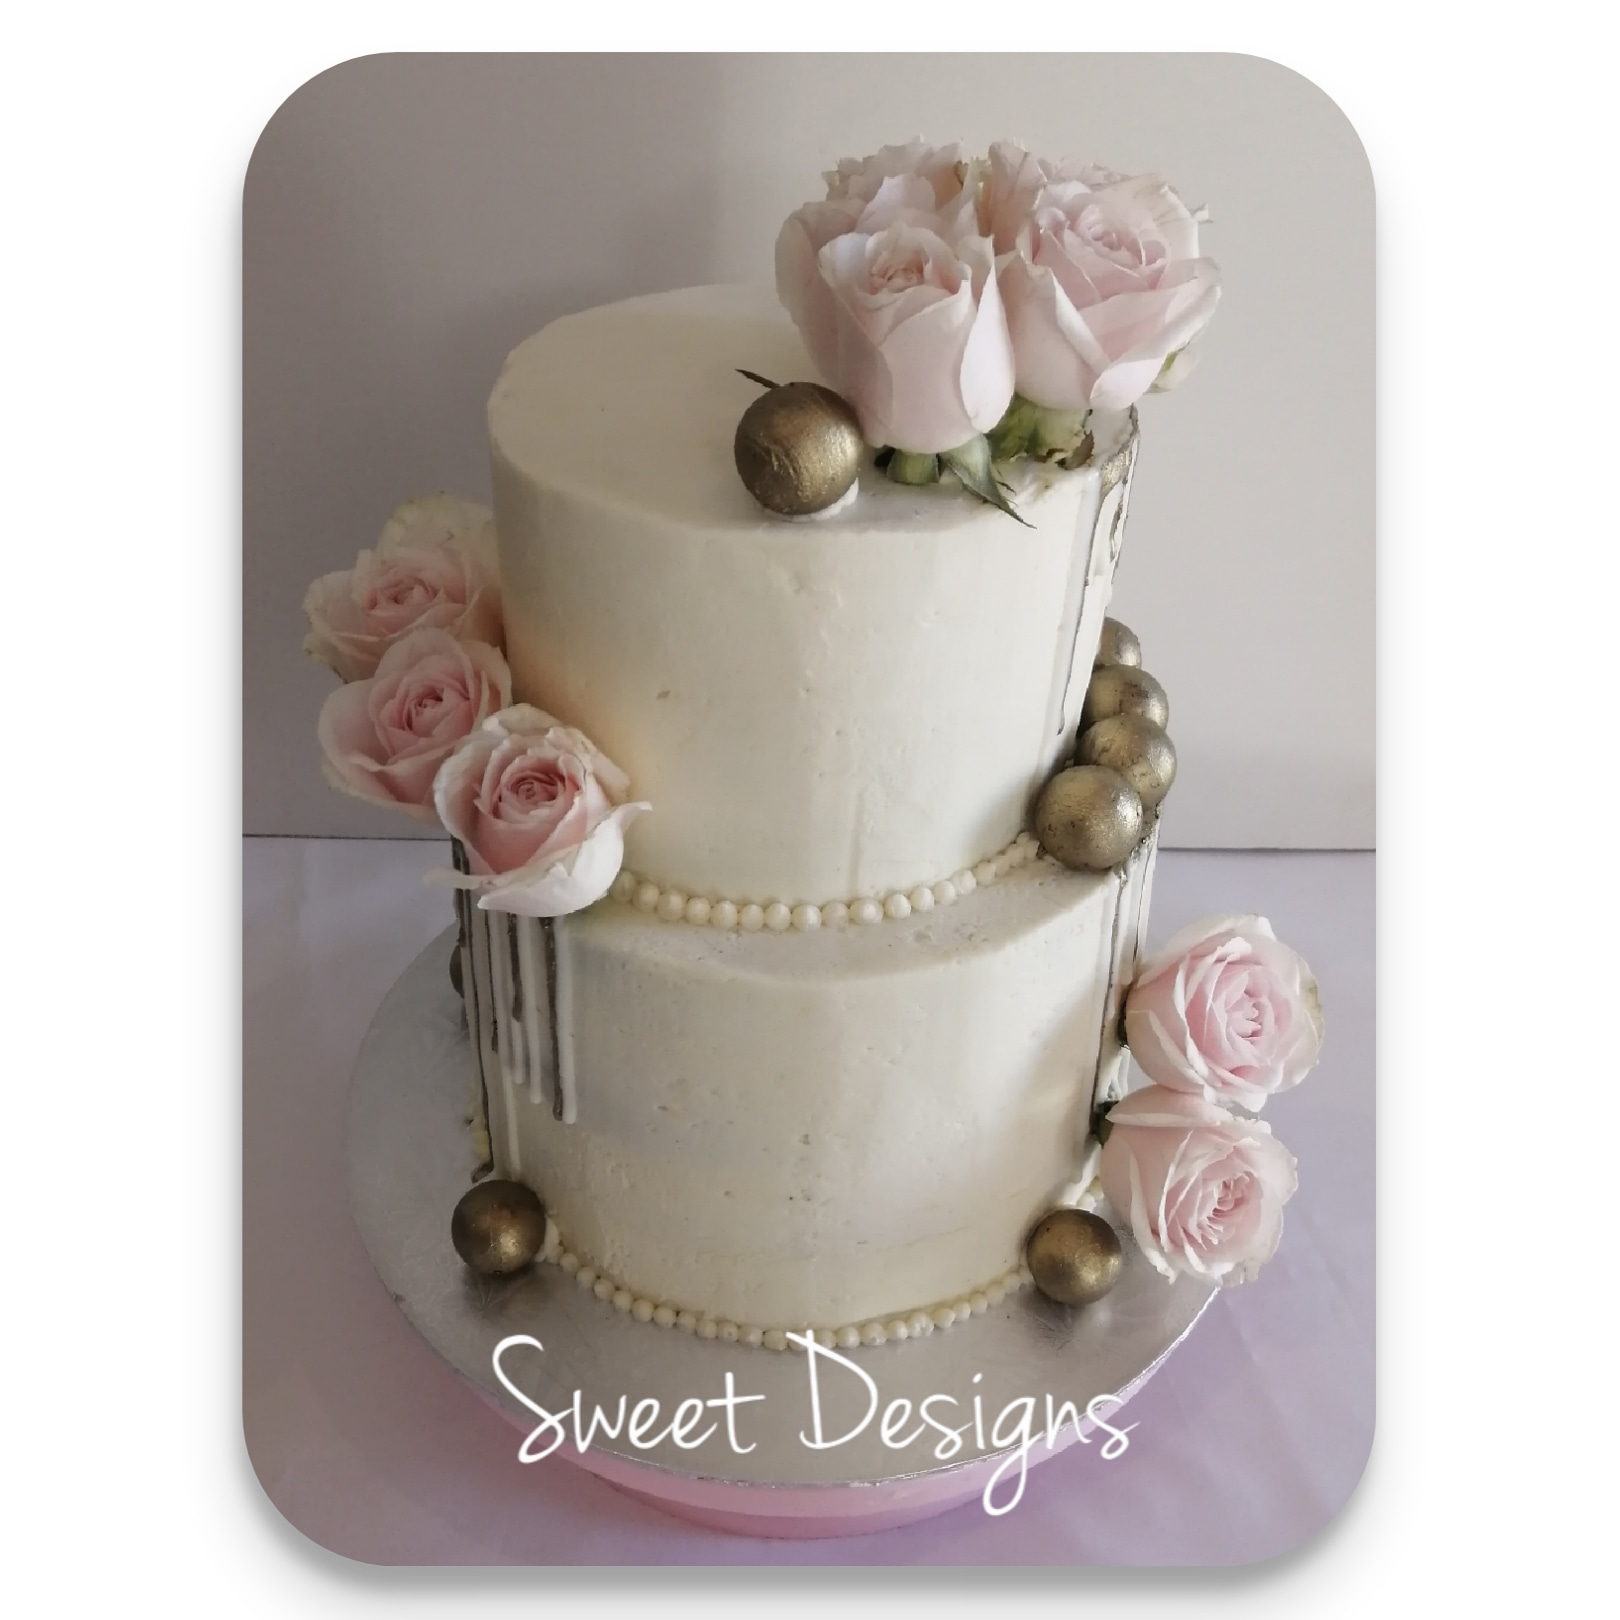 Buttercream Cake with fresh flowers and golden chocolate balls